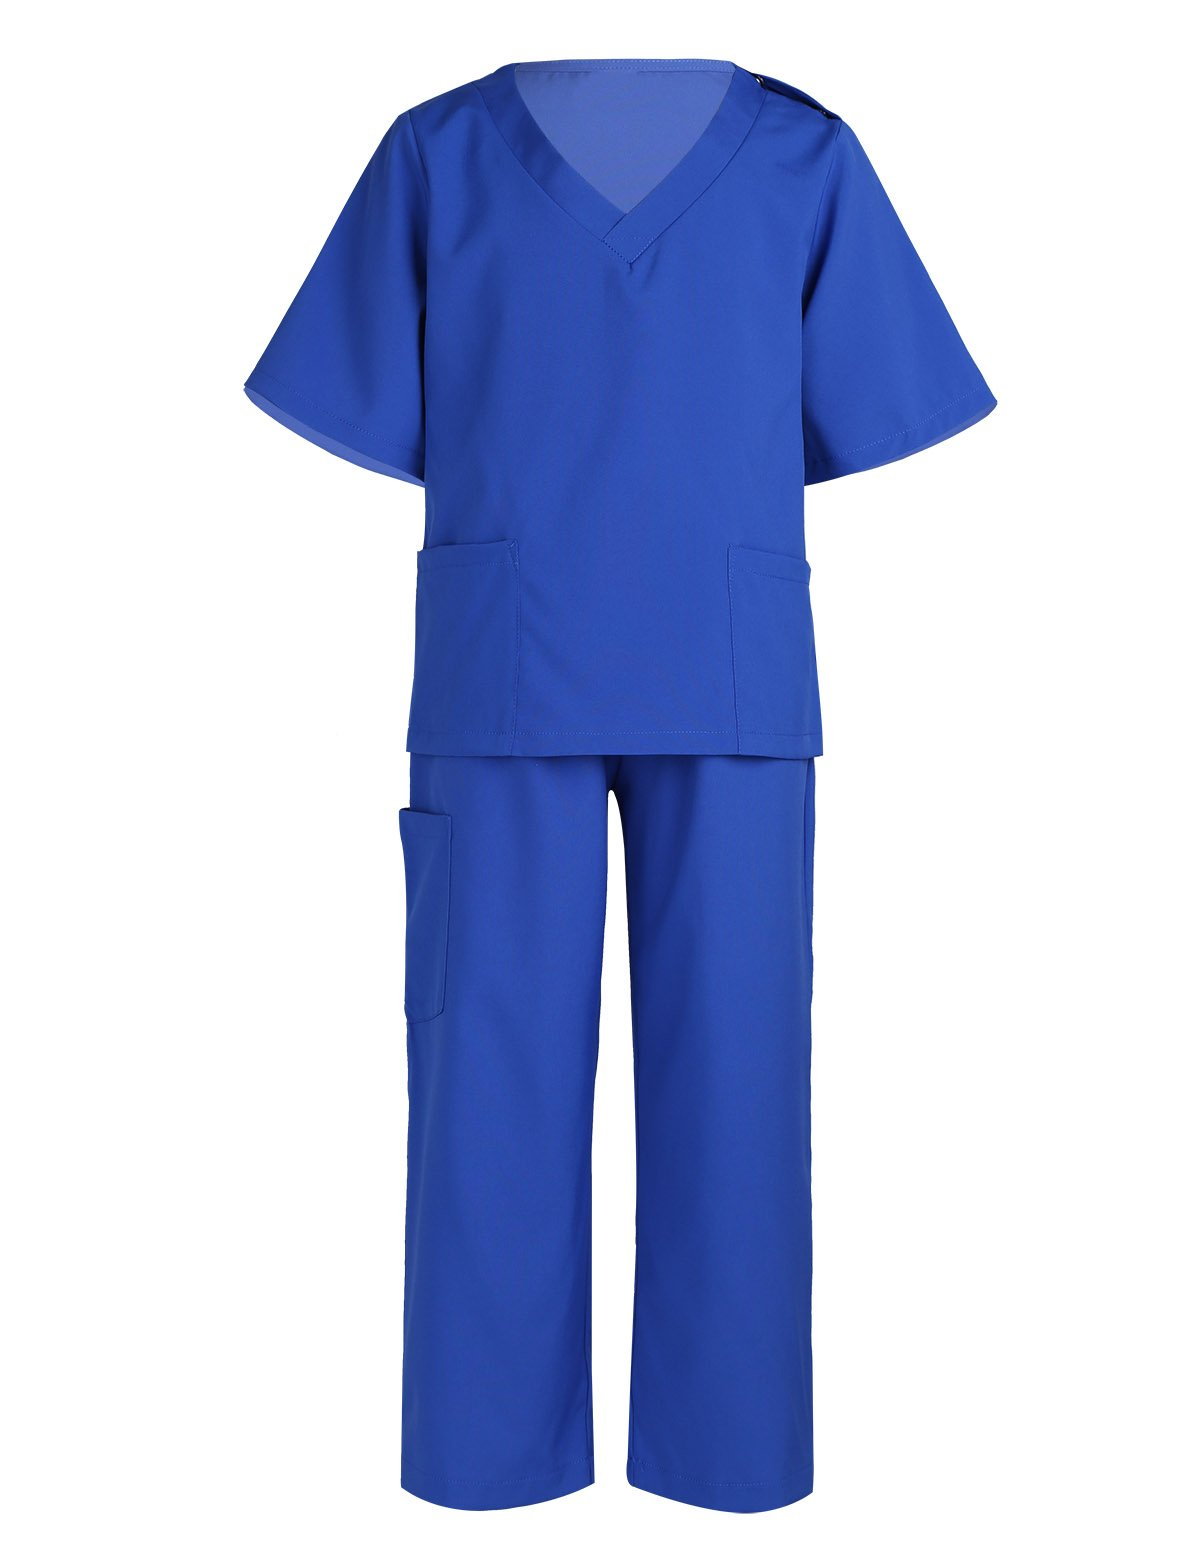 MSemis Unisex Kids Boys Girls Doctor Surgeon Halloween Cosplay Dress up Coat with Cap Mask Doctor Play Tools Set Outfits Blue Scrub Set 4-5 by MSemis